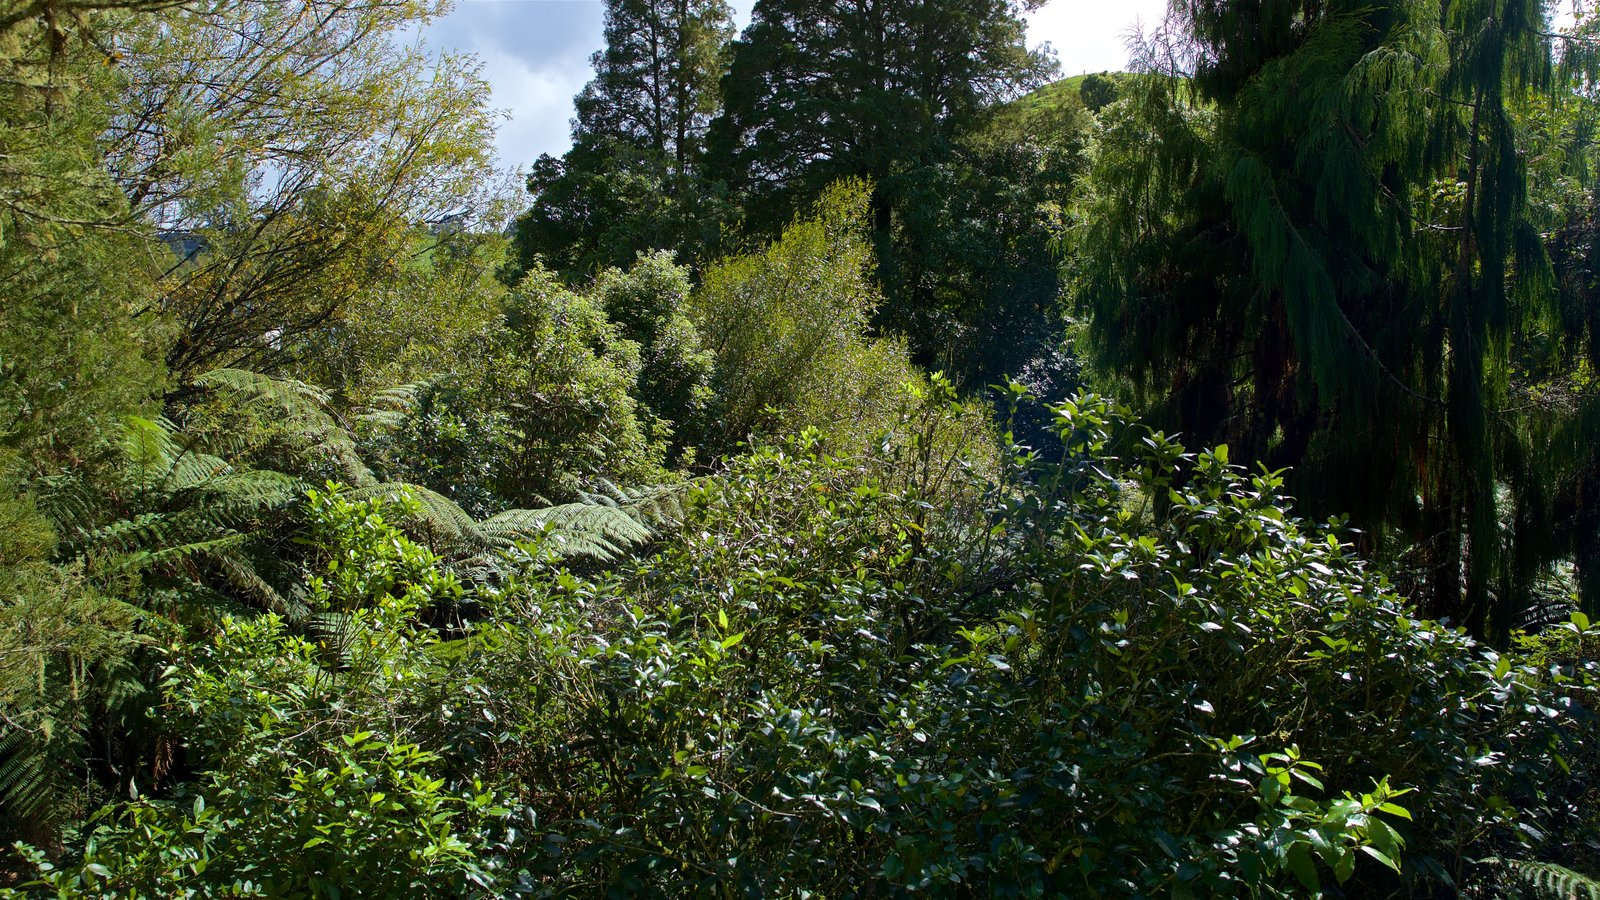 Waitomo Glowworm Caves which includes forests